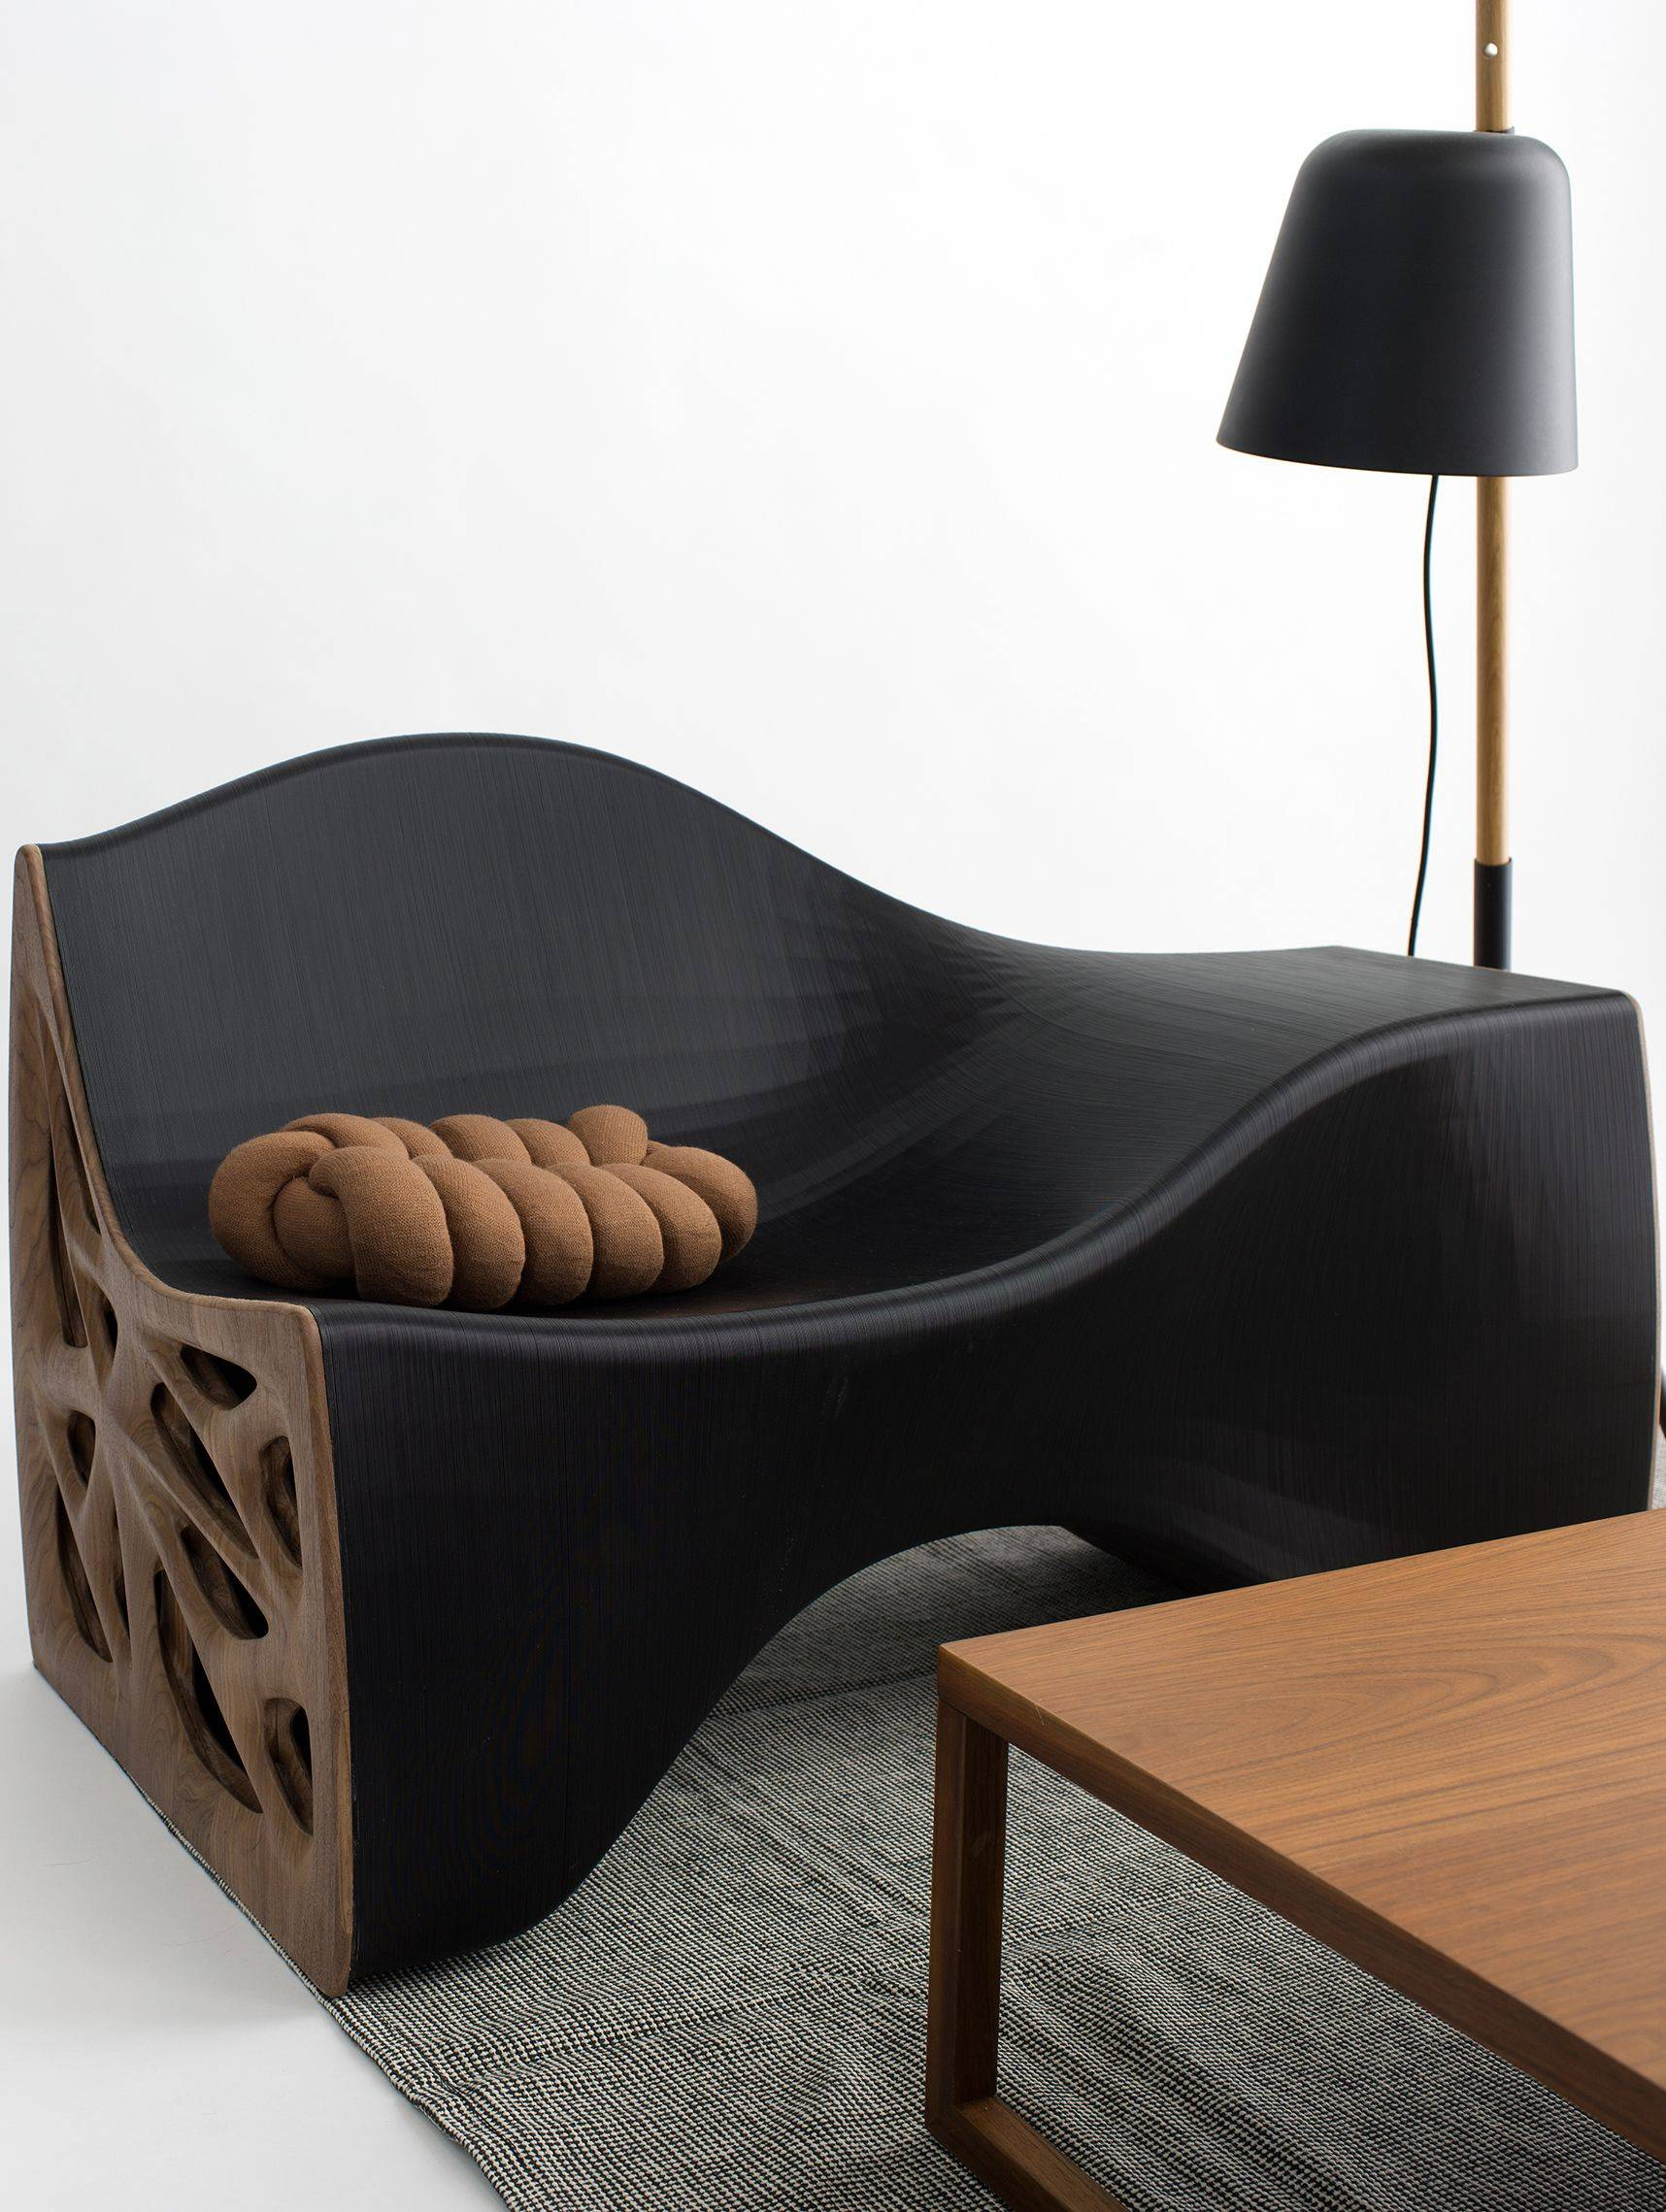 Curvy chaise lounge made of black plant resin and hardwood sides in front of coffee table